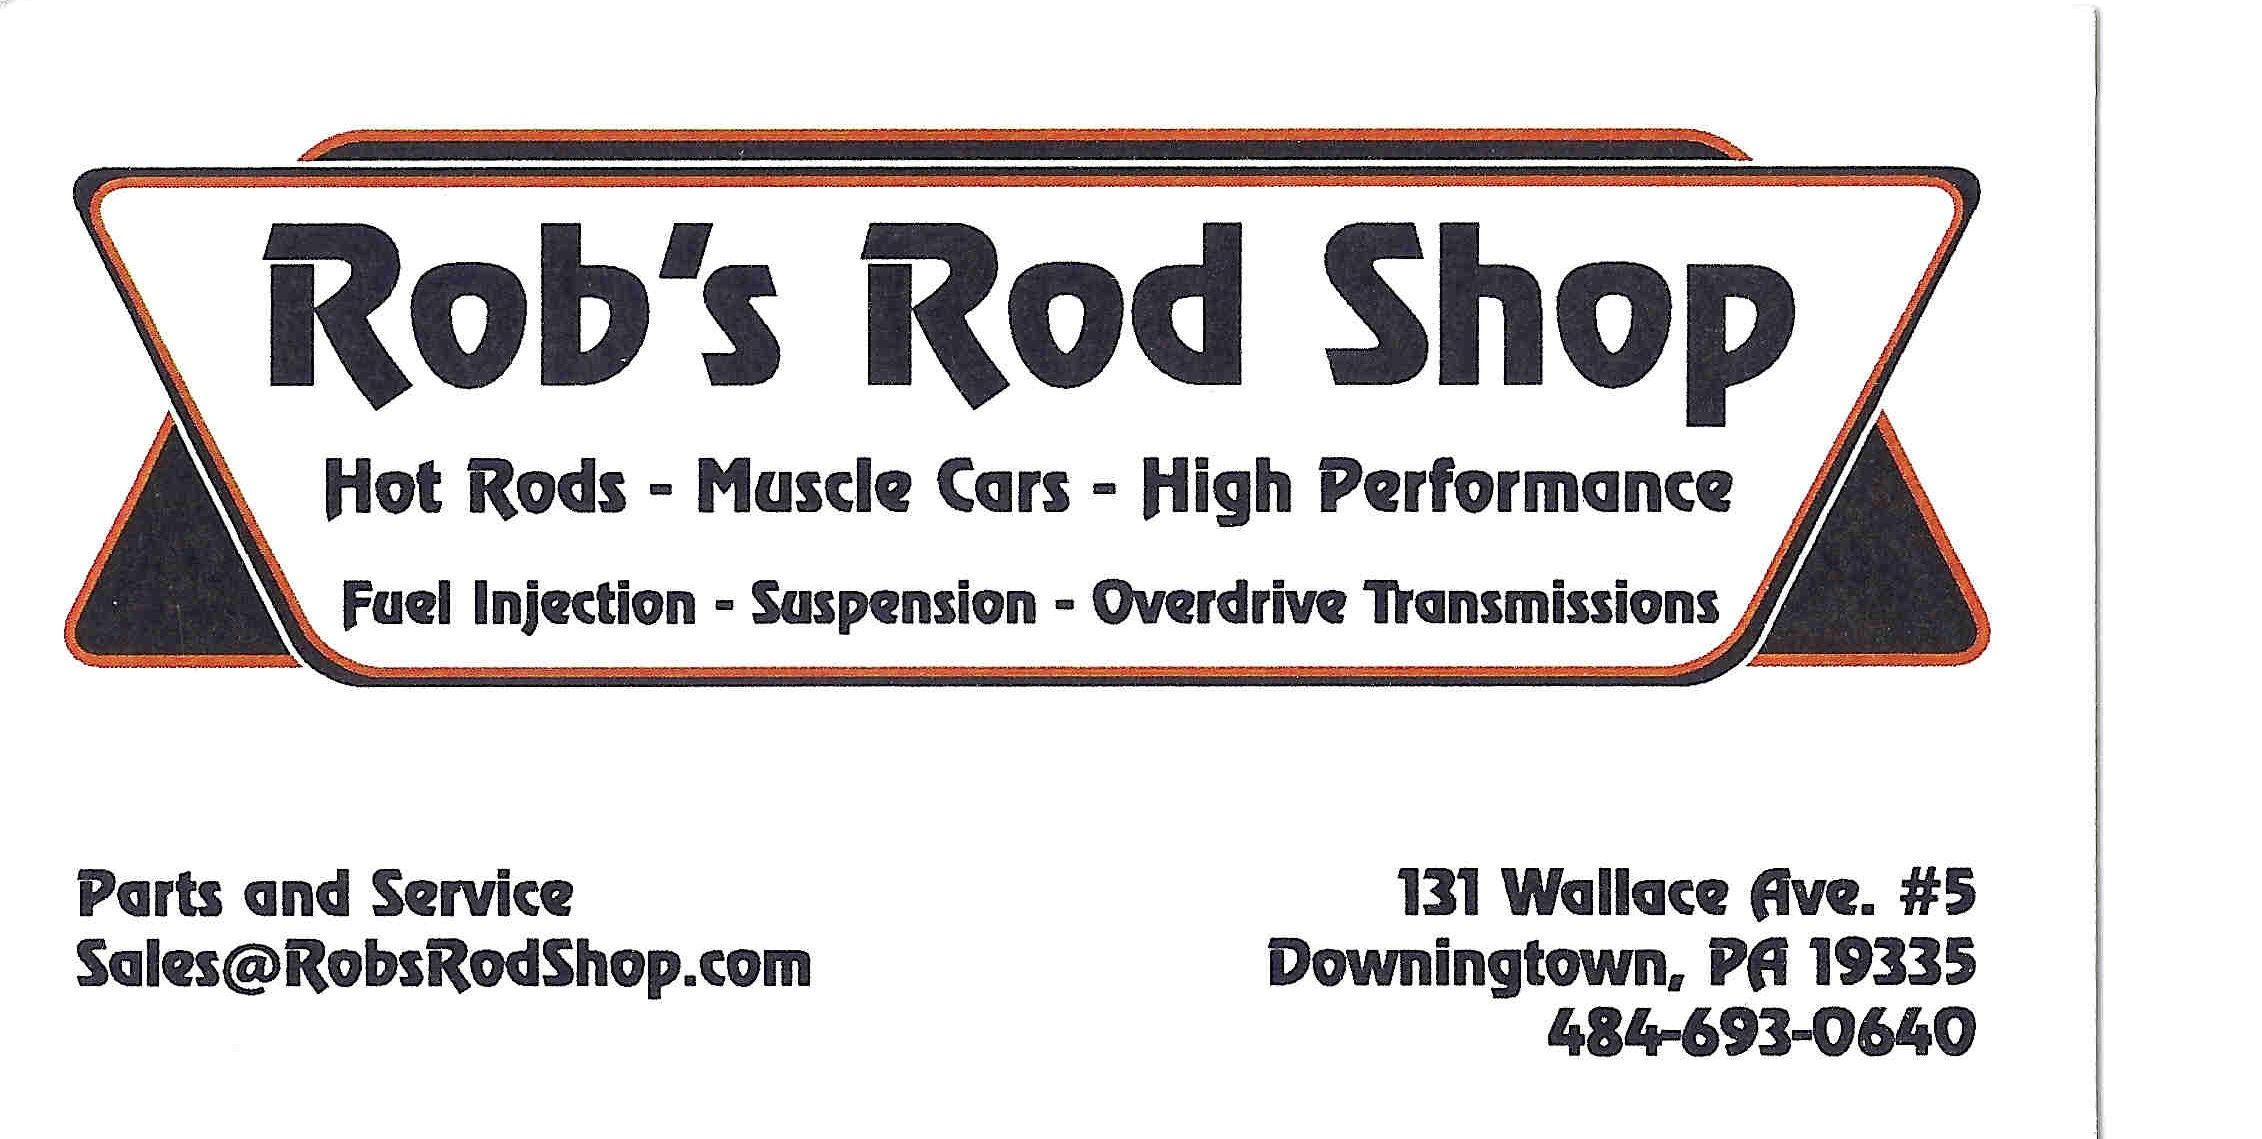 business card for rob s rod shop